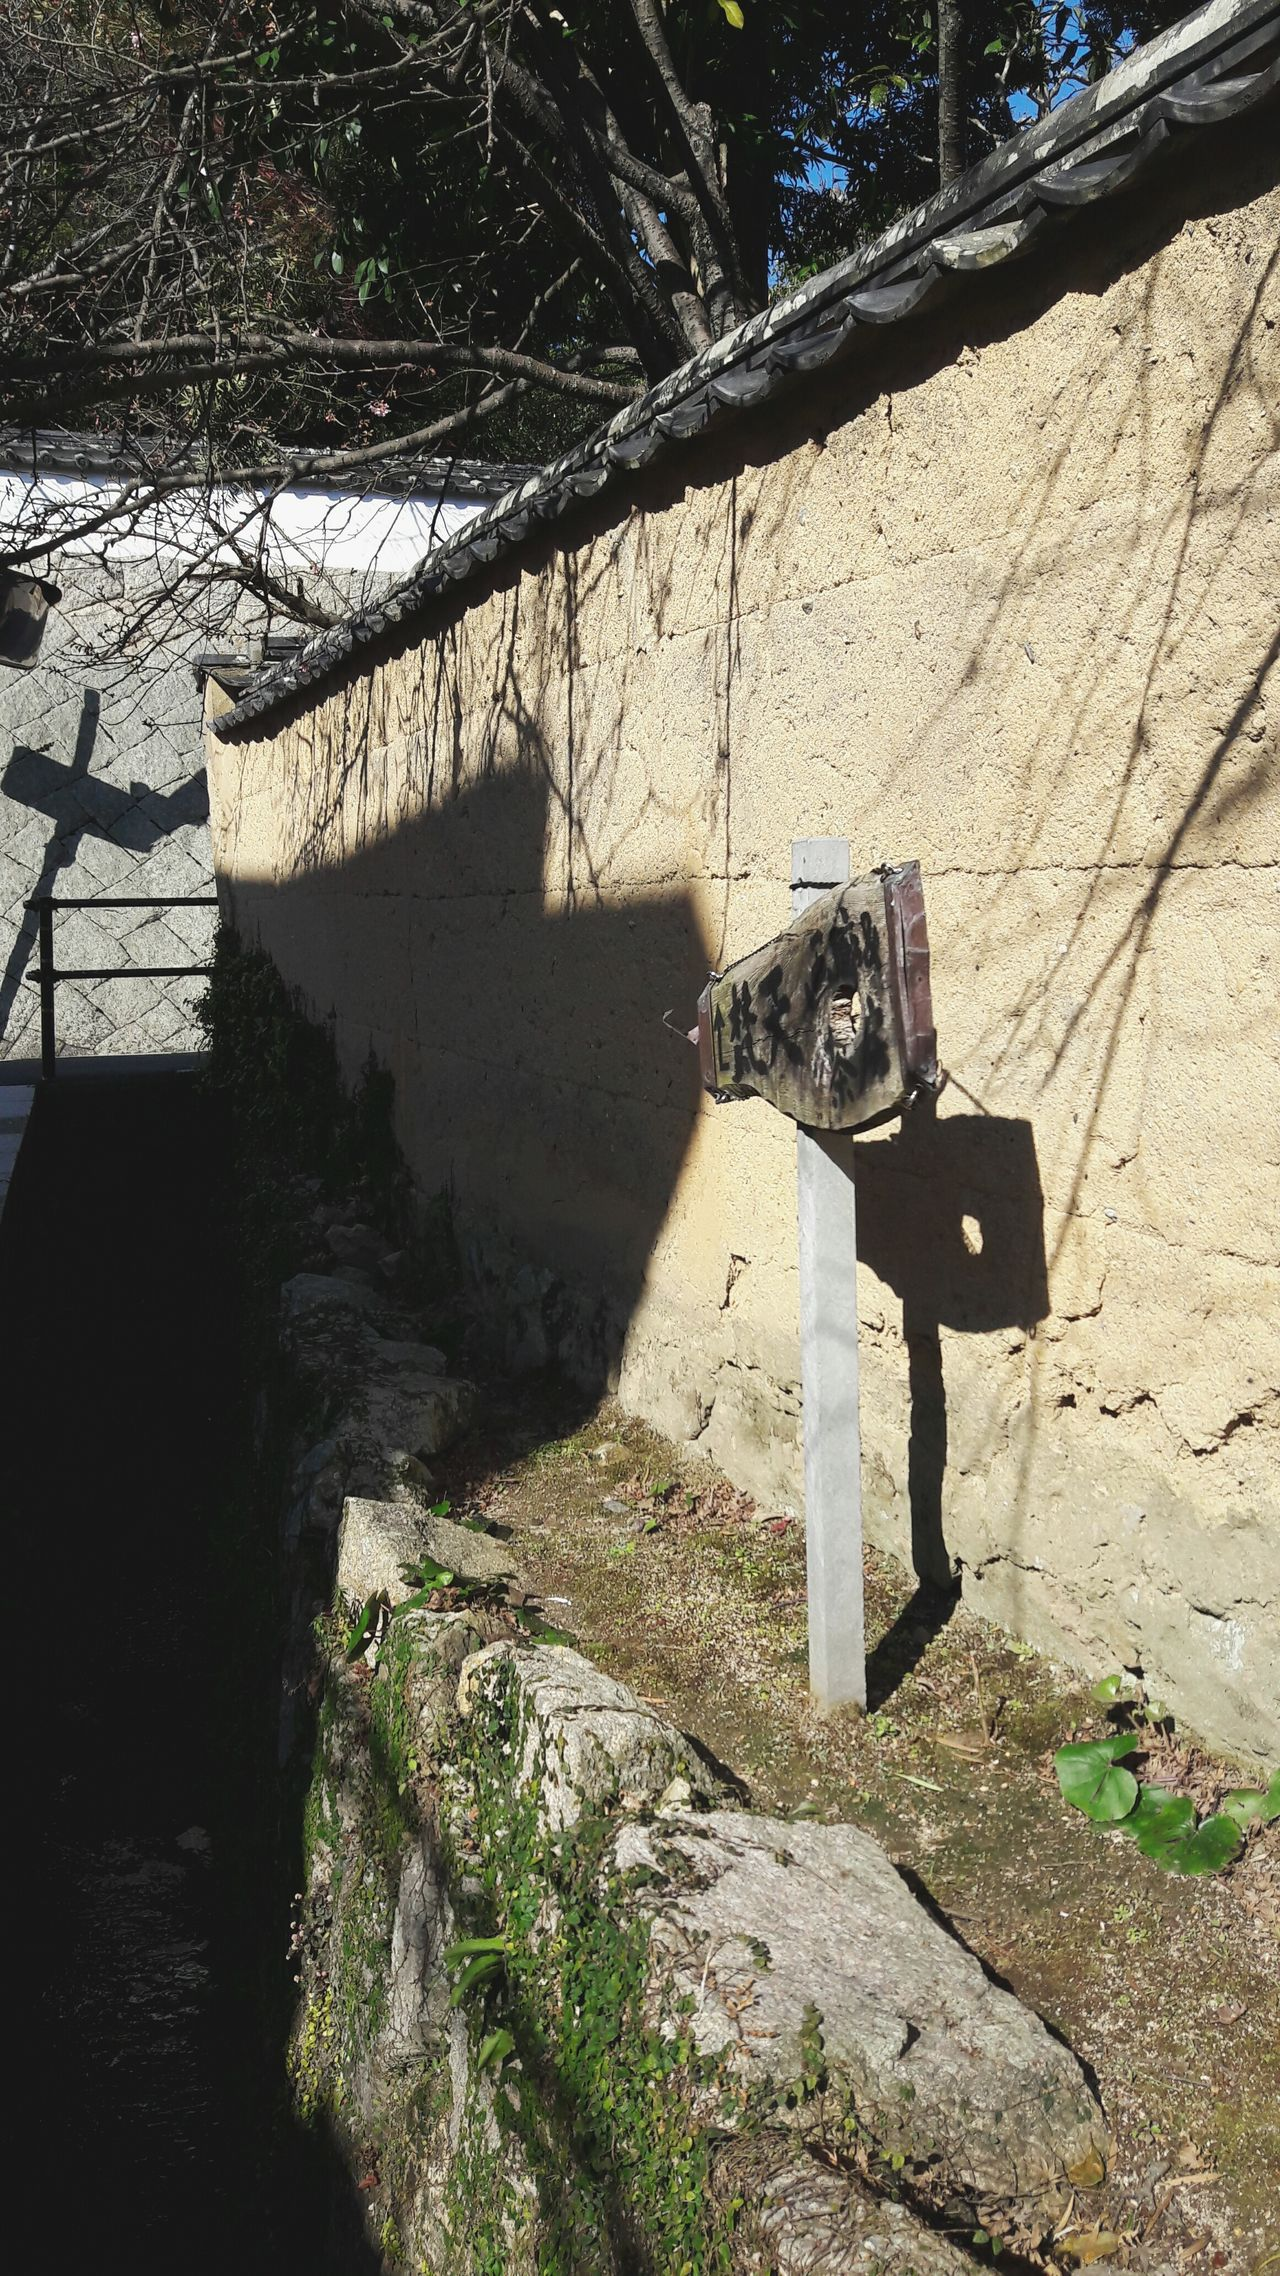 Shadow Sunlight Japan Travel Trip To Japan No People Outdoors Day